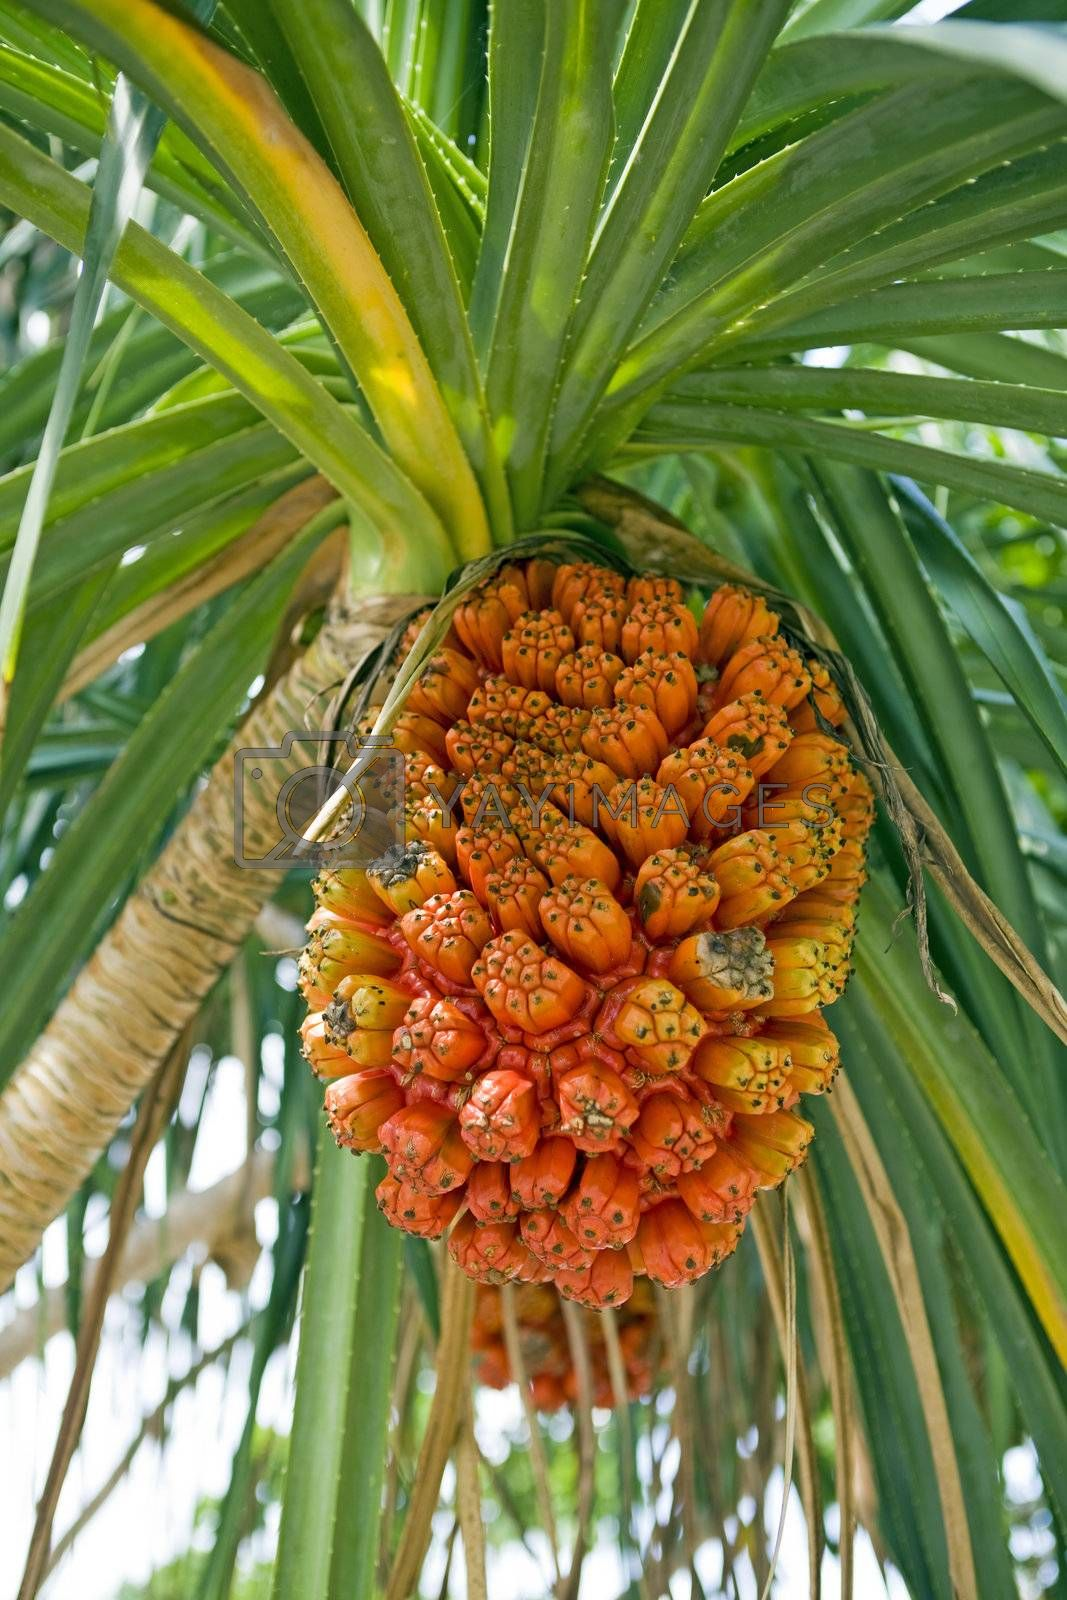 Orange, ripe pandanus fruit, also screw-pine, hanging from a tree ripe and ready for harvest. Above are its green, saw-tooth leaves.